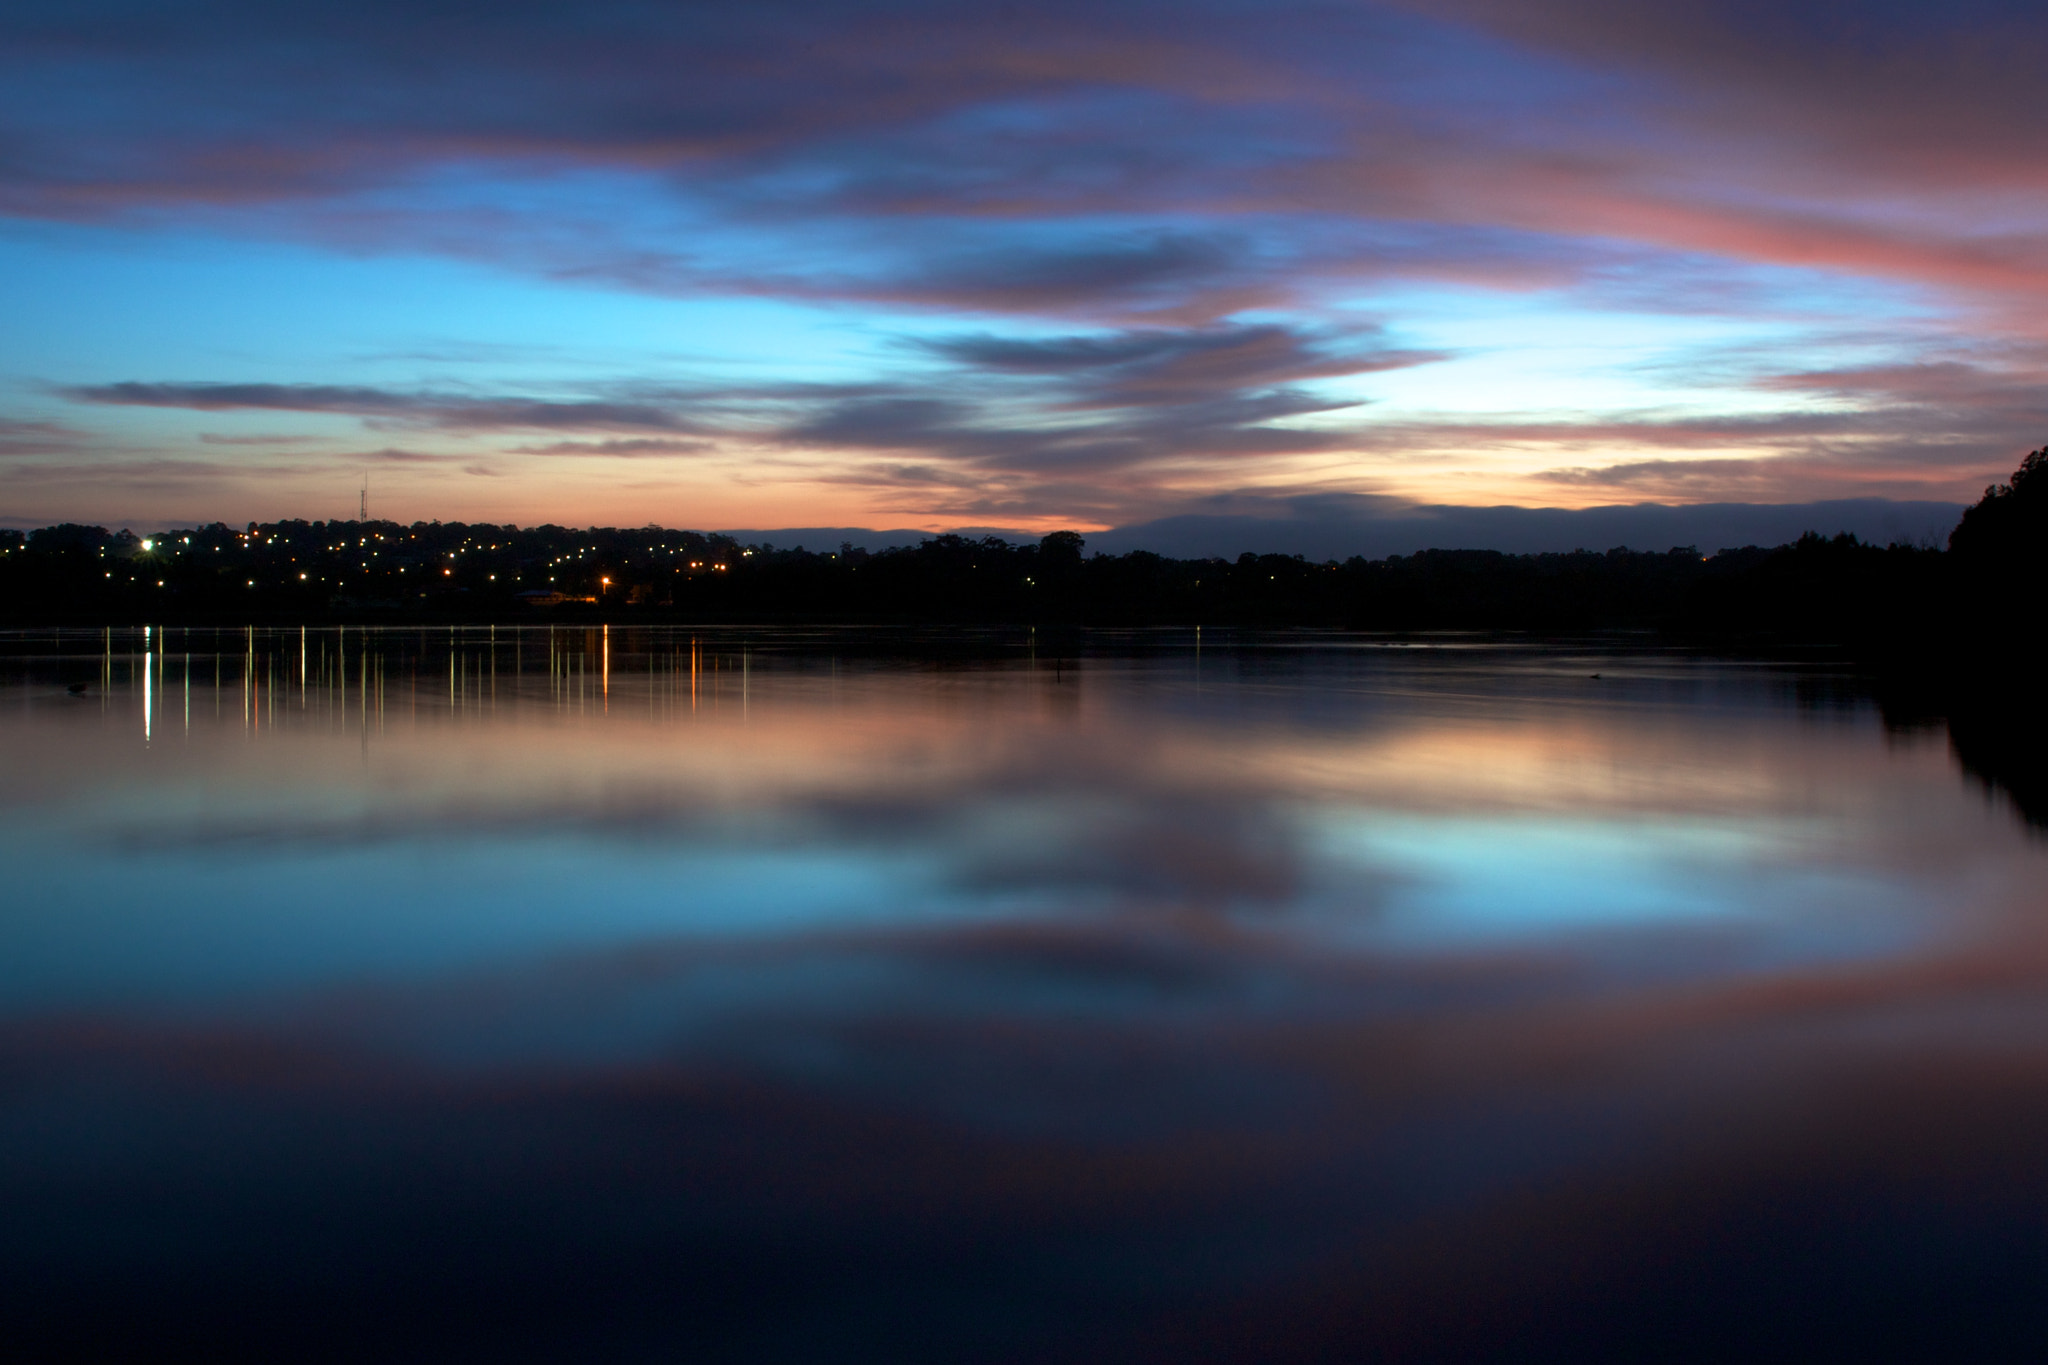 Photograph Joondalup Lake by Mike Leishman on 500px